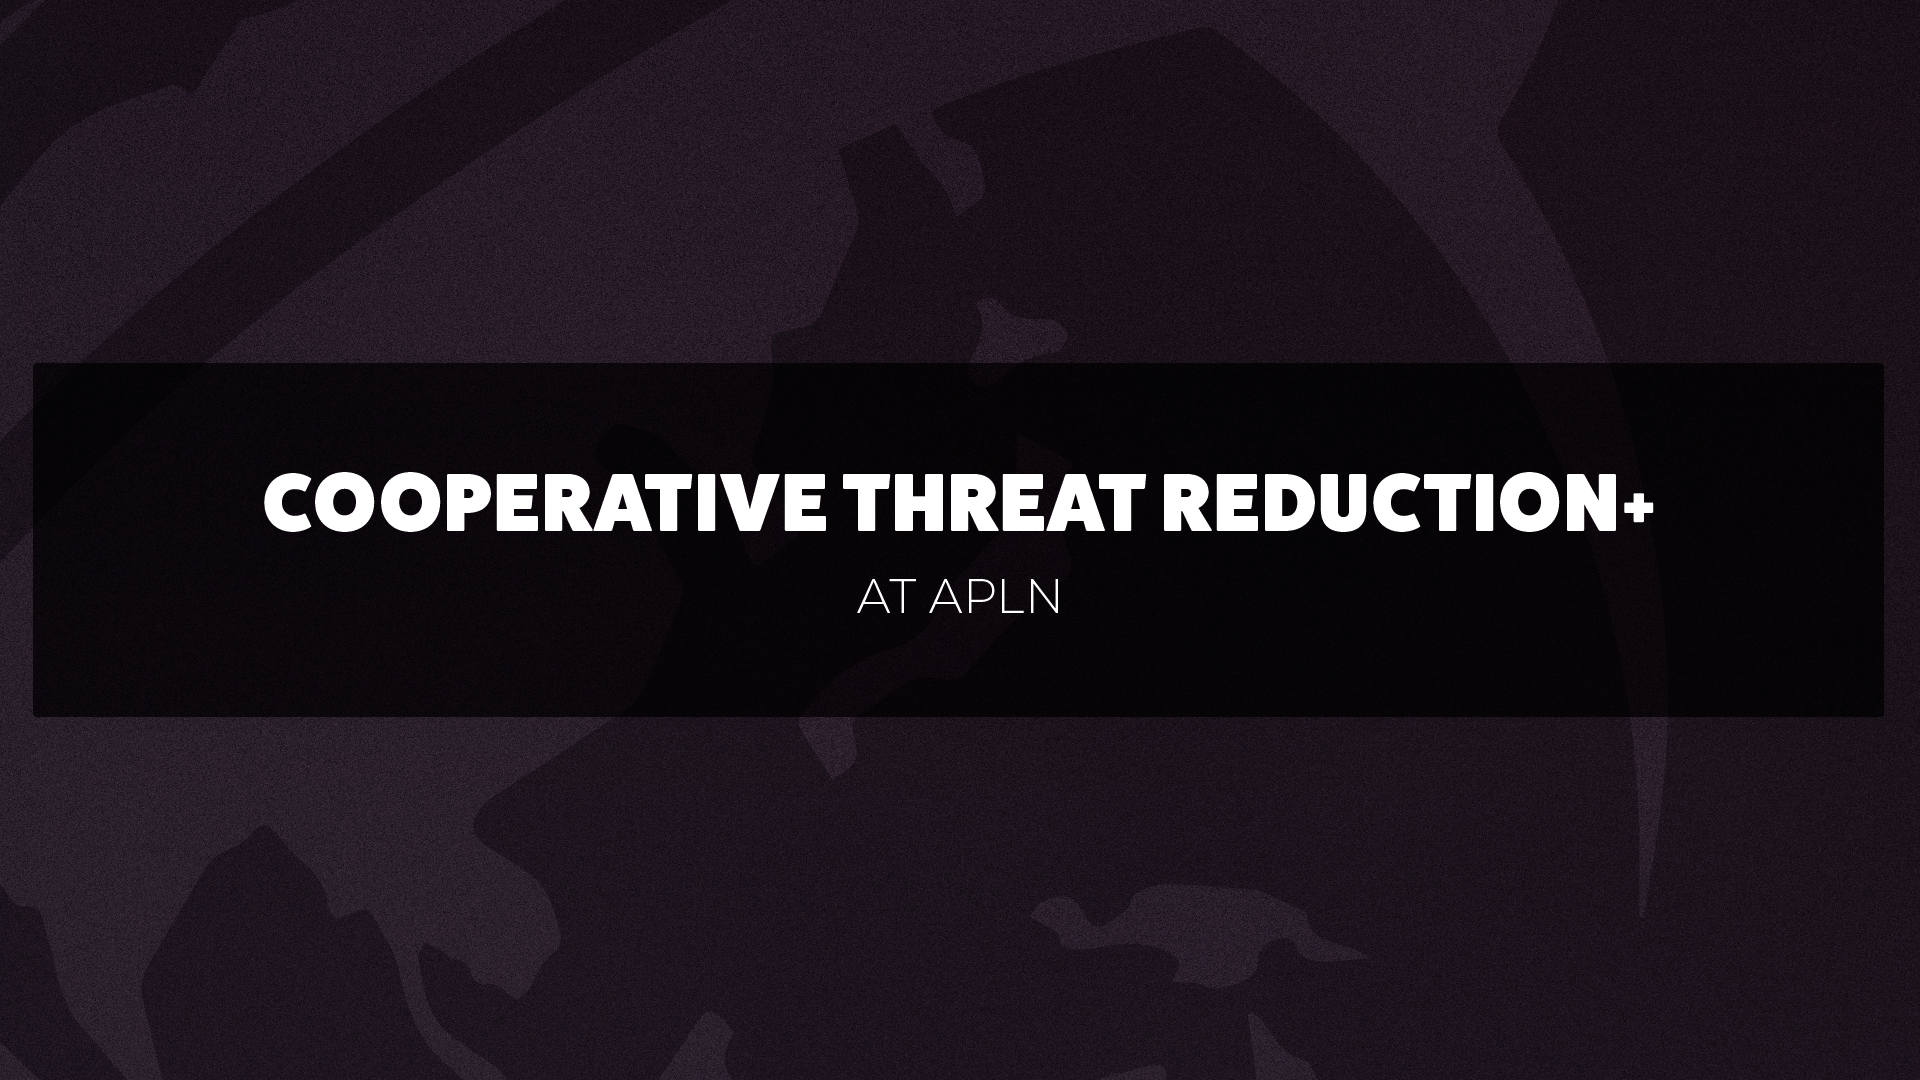 DPRK Cooperative Threat Reduction+